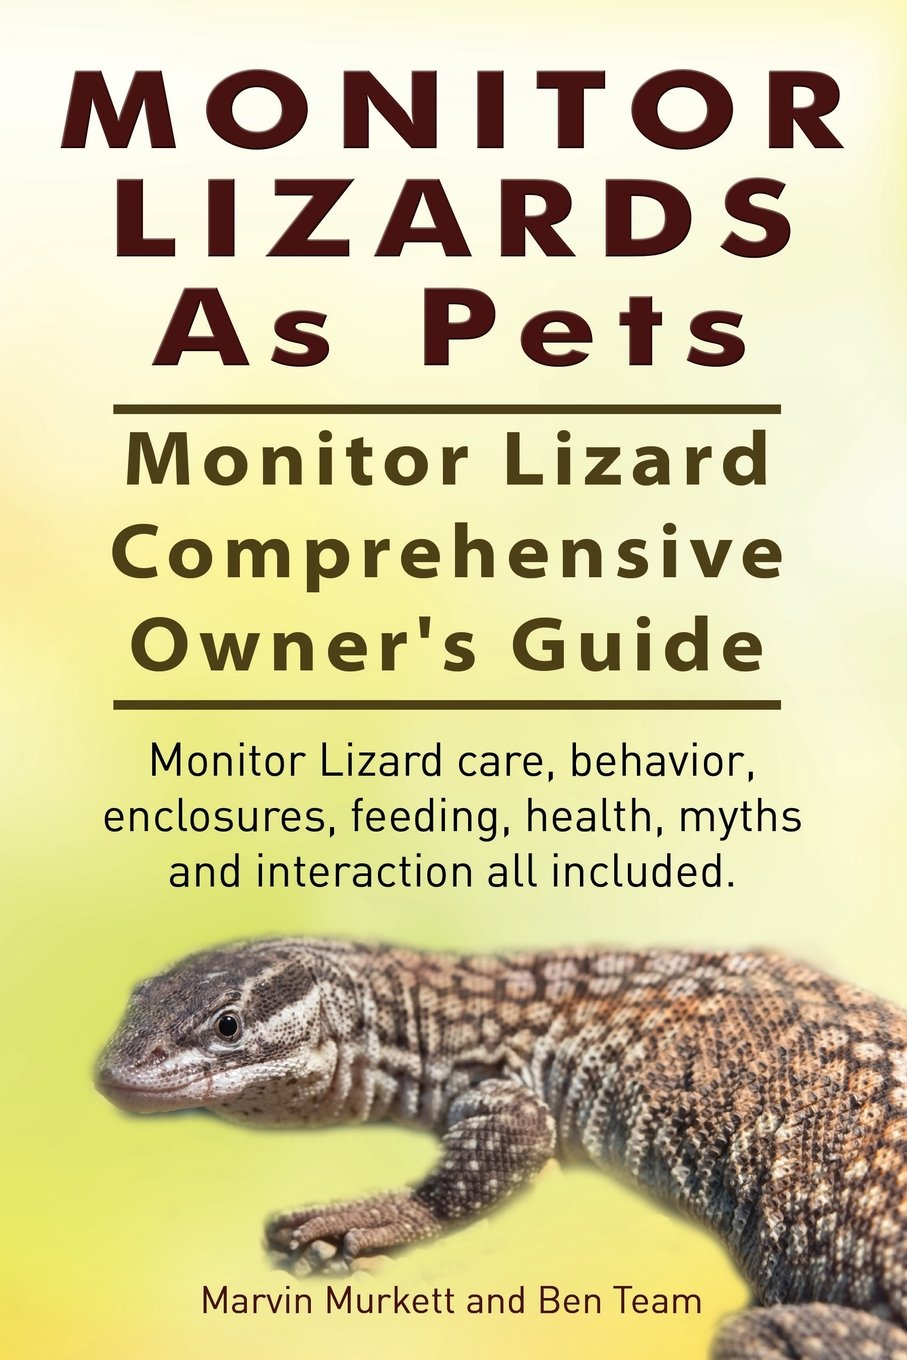 Monitor Lizards As Pets. Monitor Lizard Comprehensive Owner's Guide.  Monitor Lizard care, behavior, enclosures, feeding, health, myths and  interaction all ...